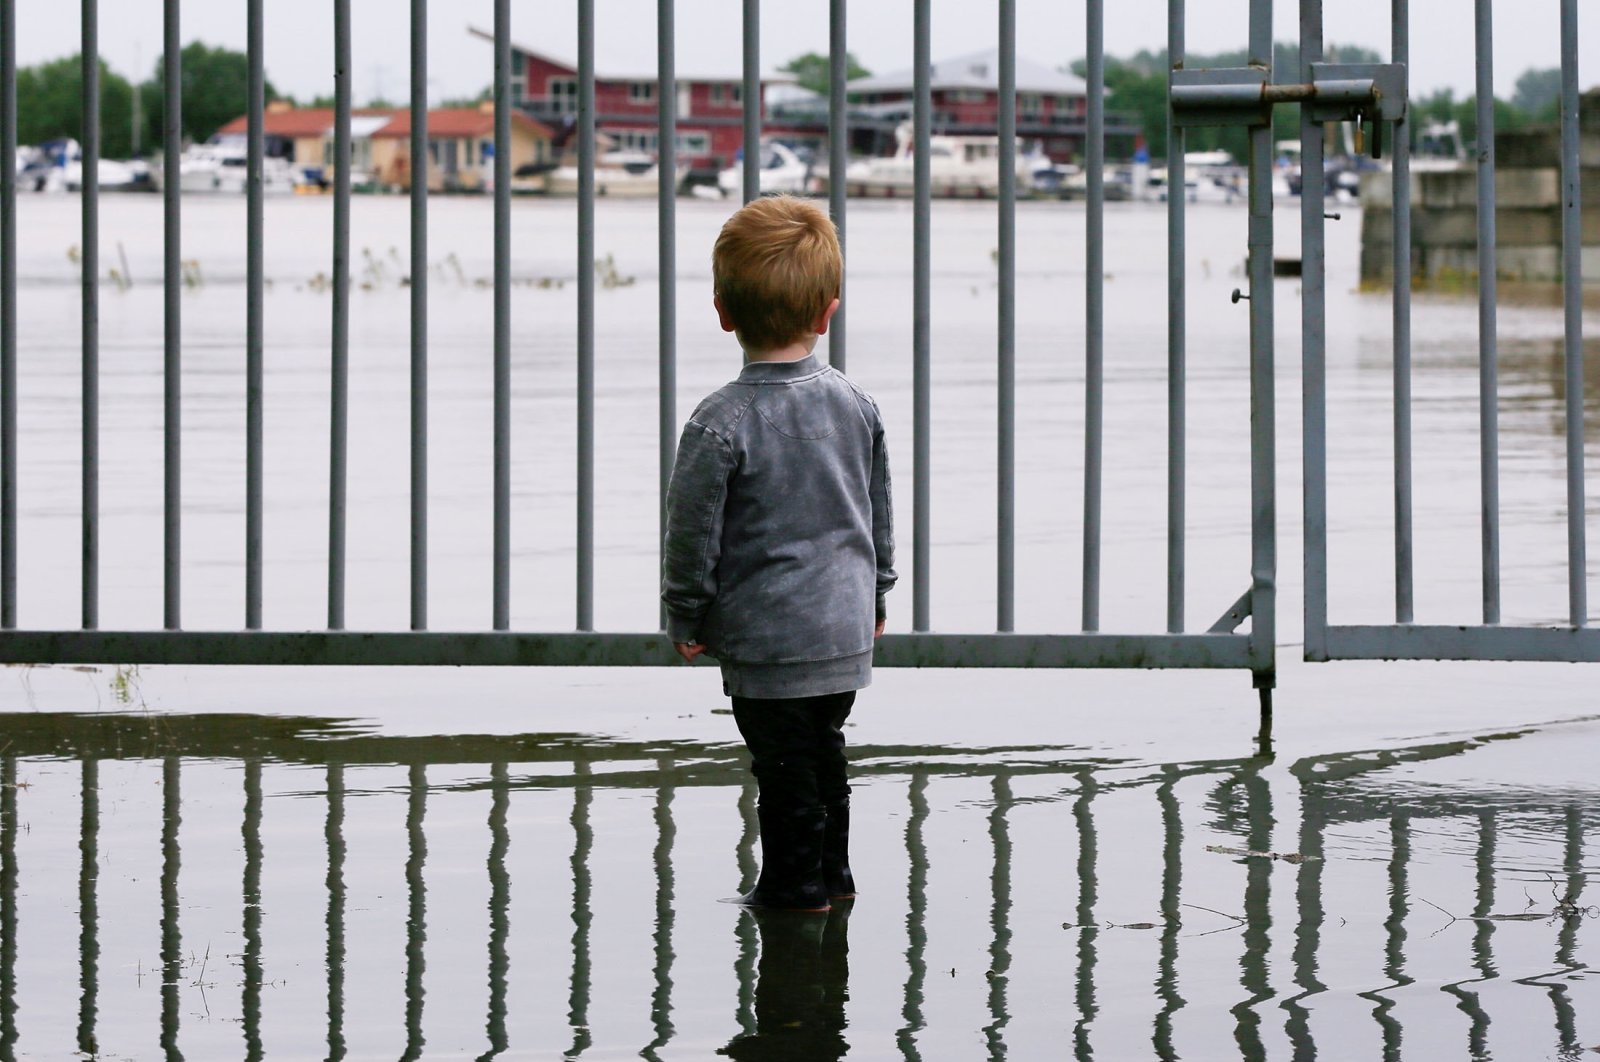 A child looks on as water floods through a fence, in Wessem, the Netherlands, July 16, 2021. (Reuters Photo)